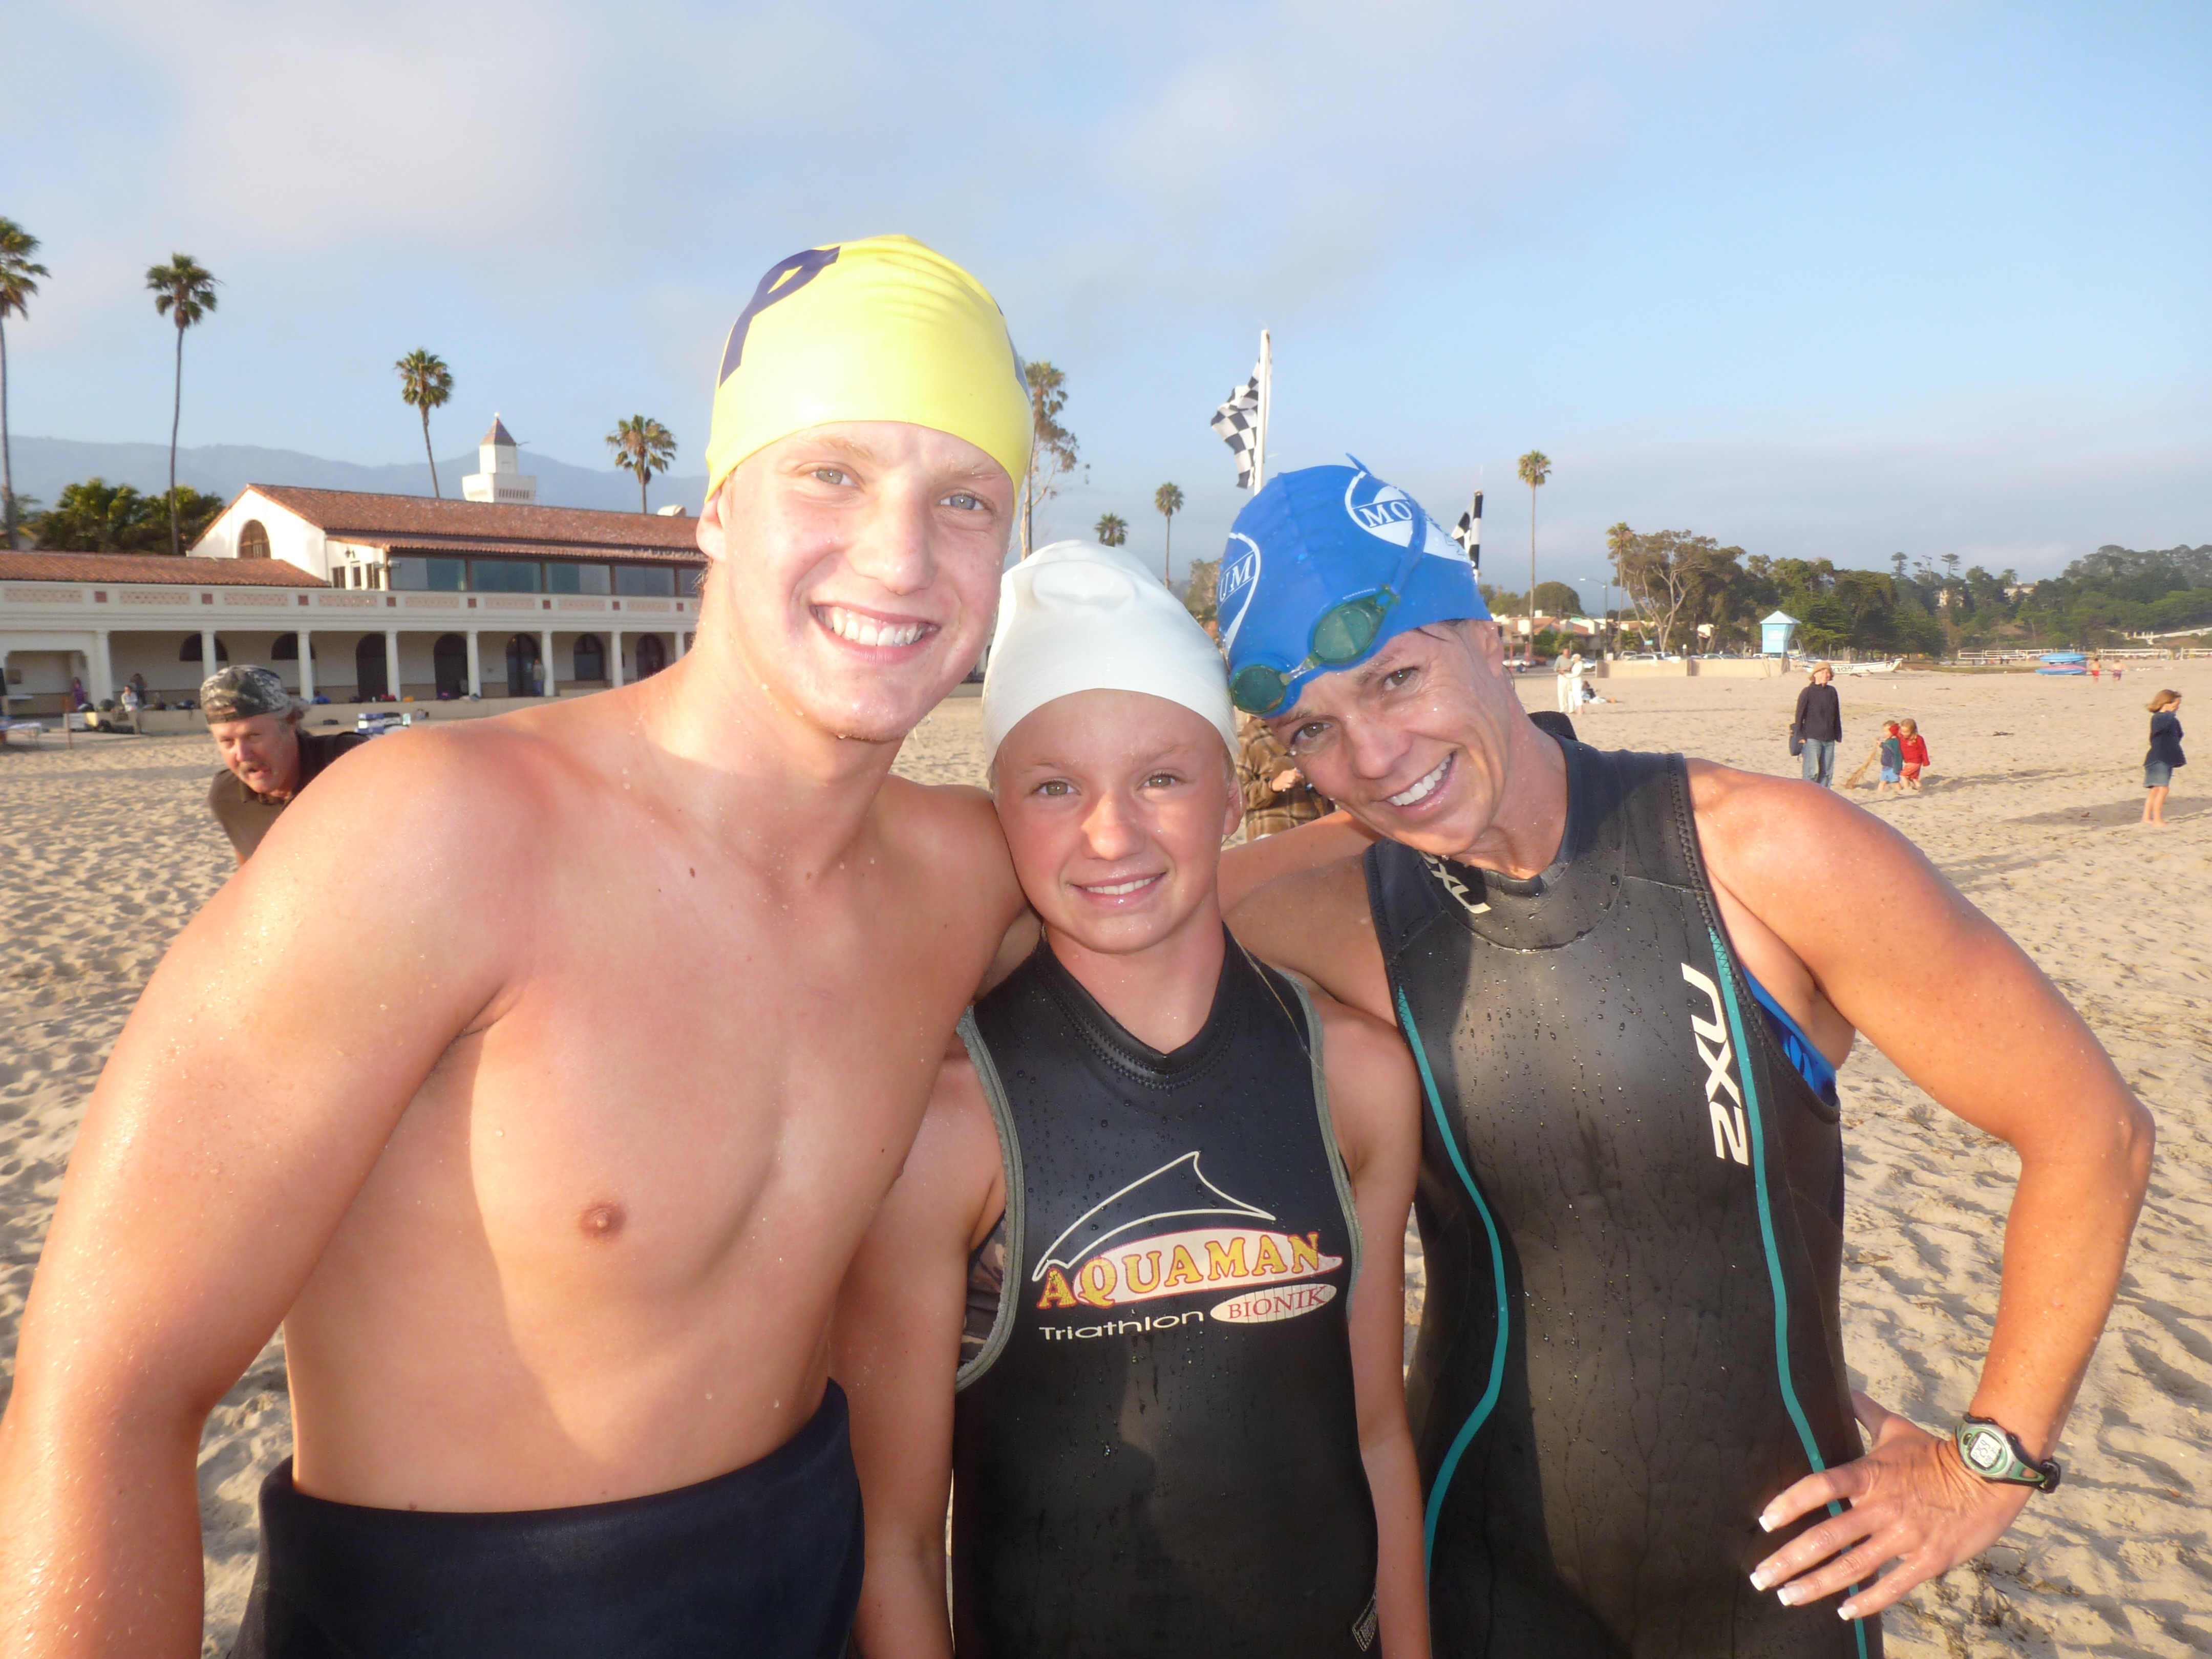 The Schroeder family, from left, son Grant, daughter Erica and mom Dawn did the 1k ocean swim together at the Reef and Run Series. (Photo by Randy Weiss)